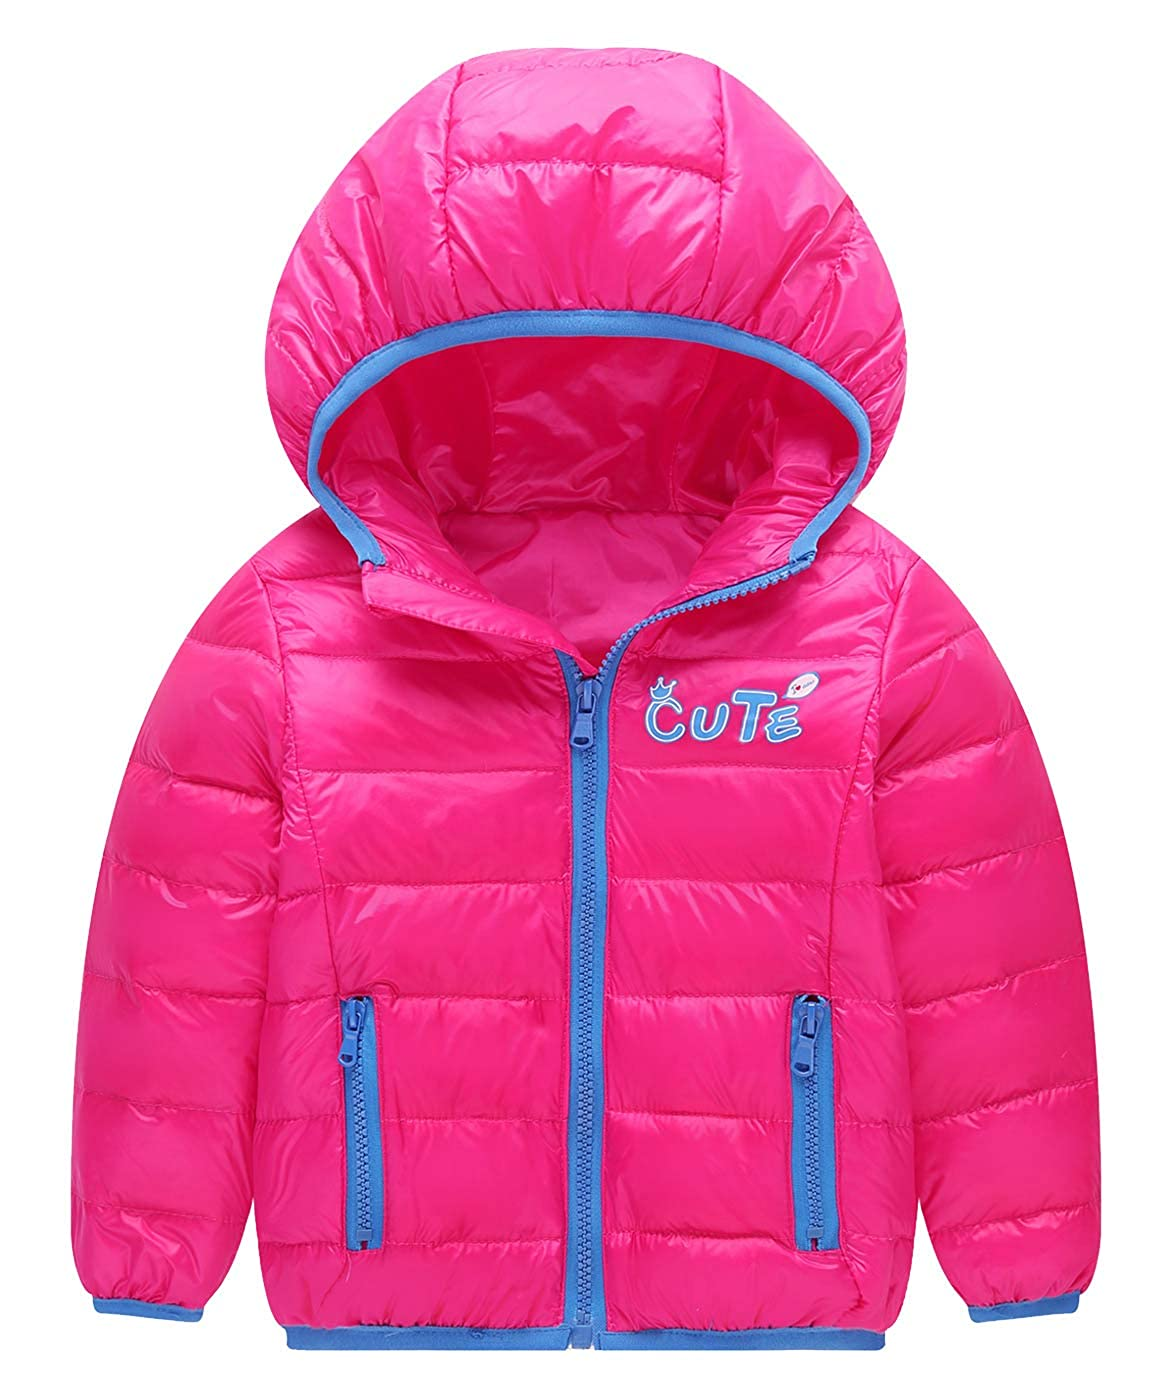 Happy Cherry Boys Girls Winter Puffer Down Jacket Kids Warm Coat Thicken Hoodie Outfit Lightweight Snowsuit 3-4T